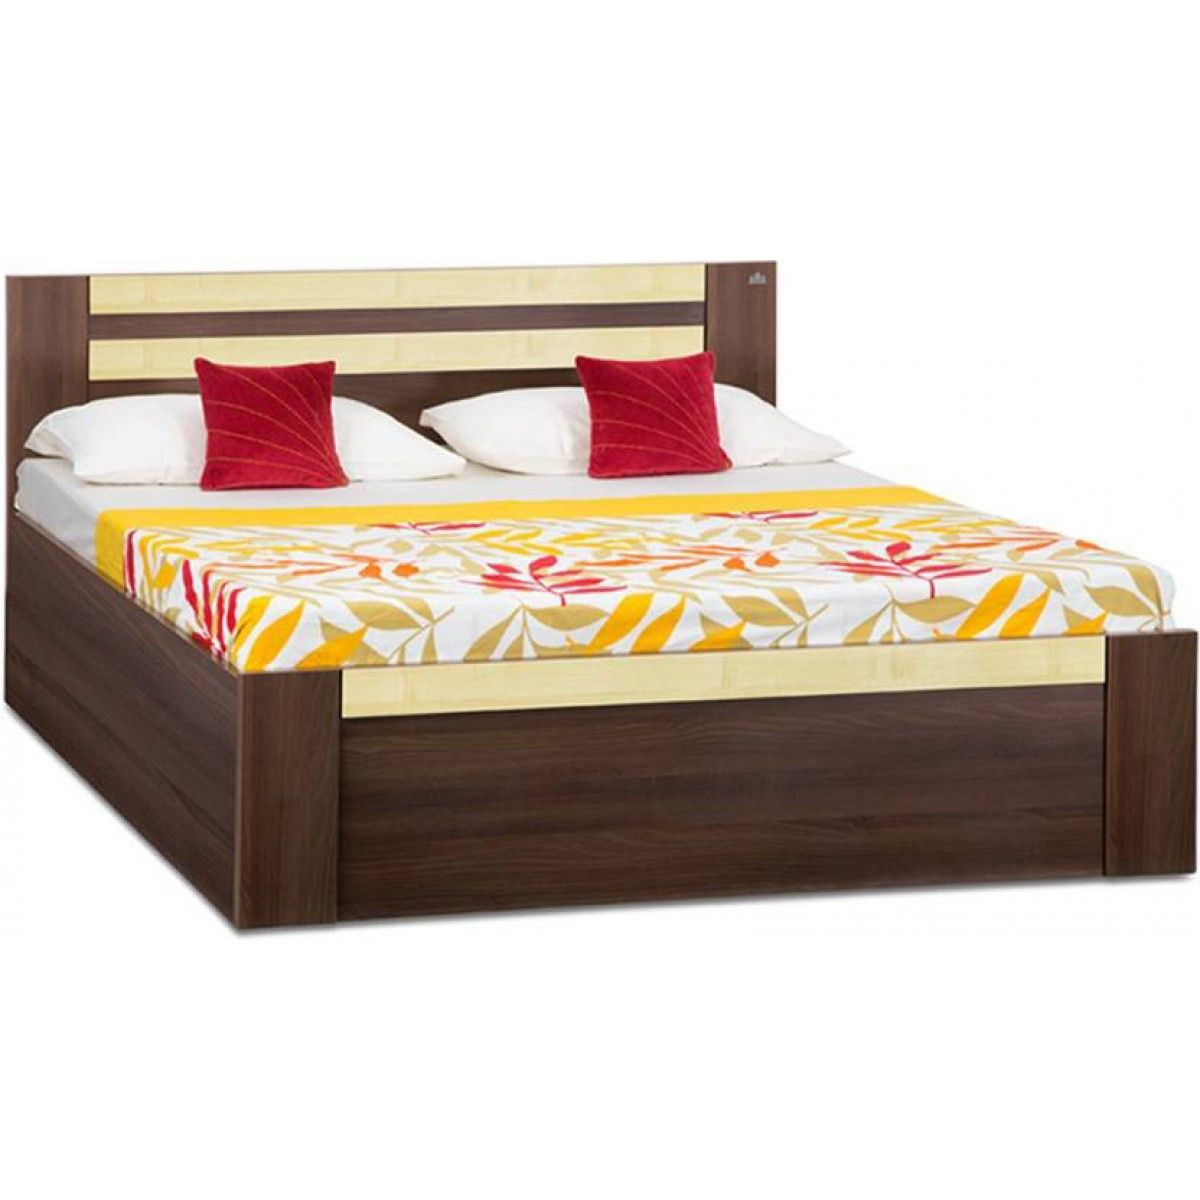 When Style Meet The Wide Storage Yes It S A Recent Indian King Size Bed Comes With Wide Storage Har Wooden Bed Design Double Bed Designs Bed Design Modern